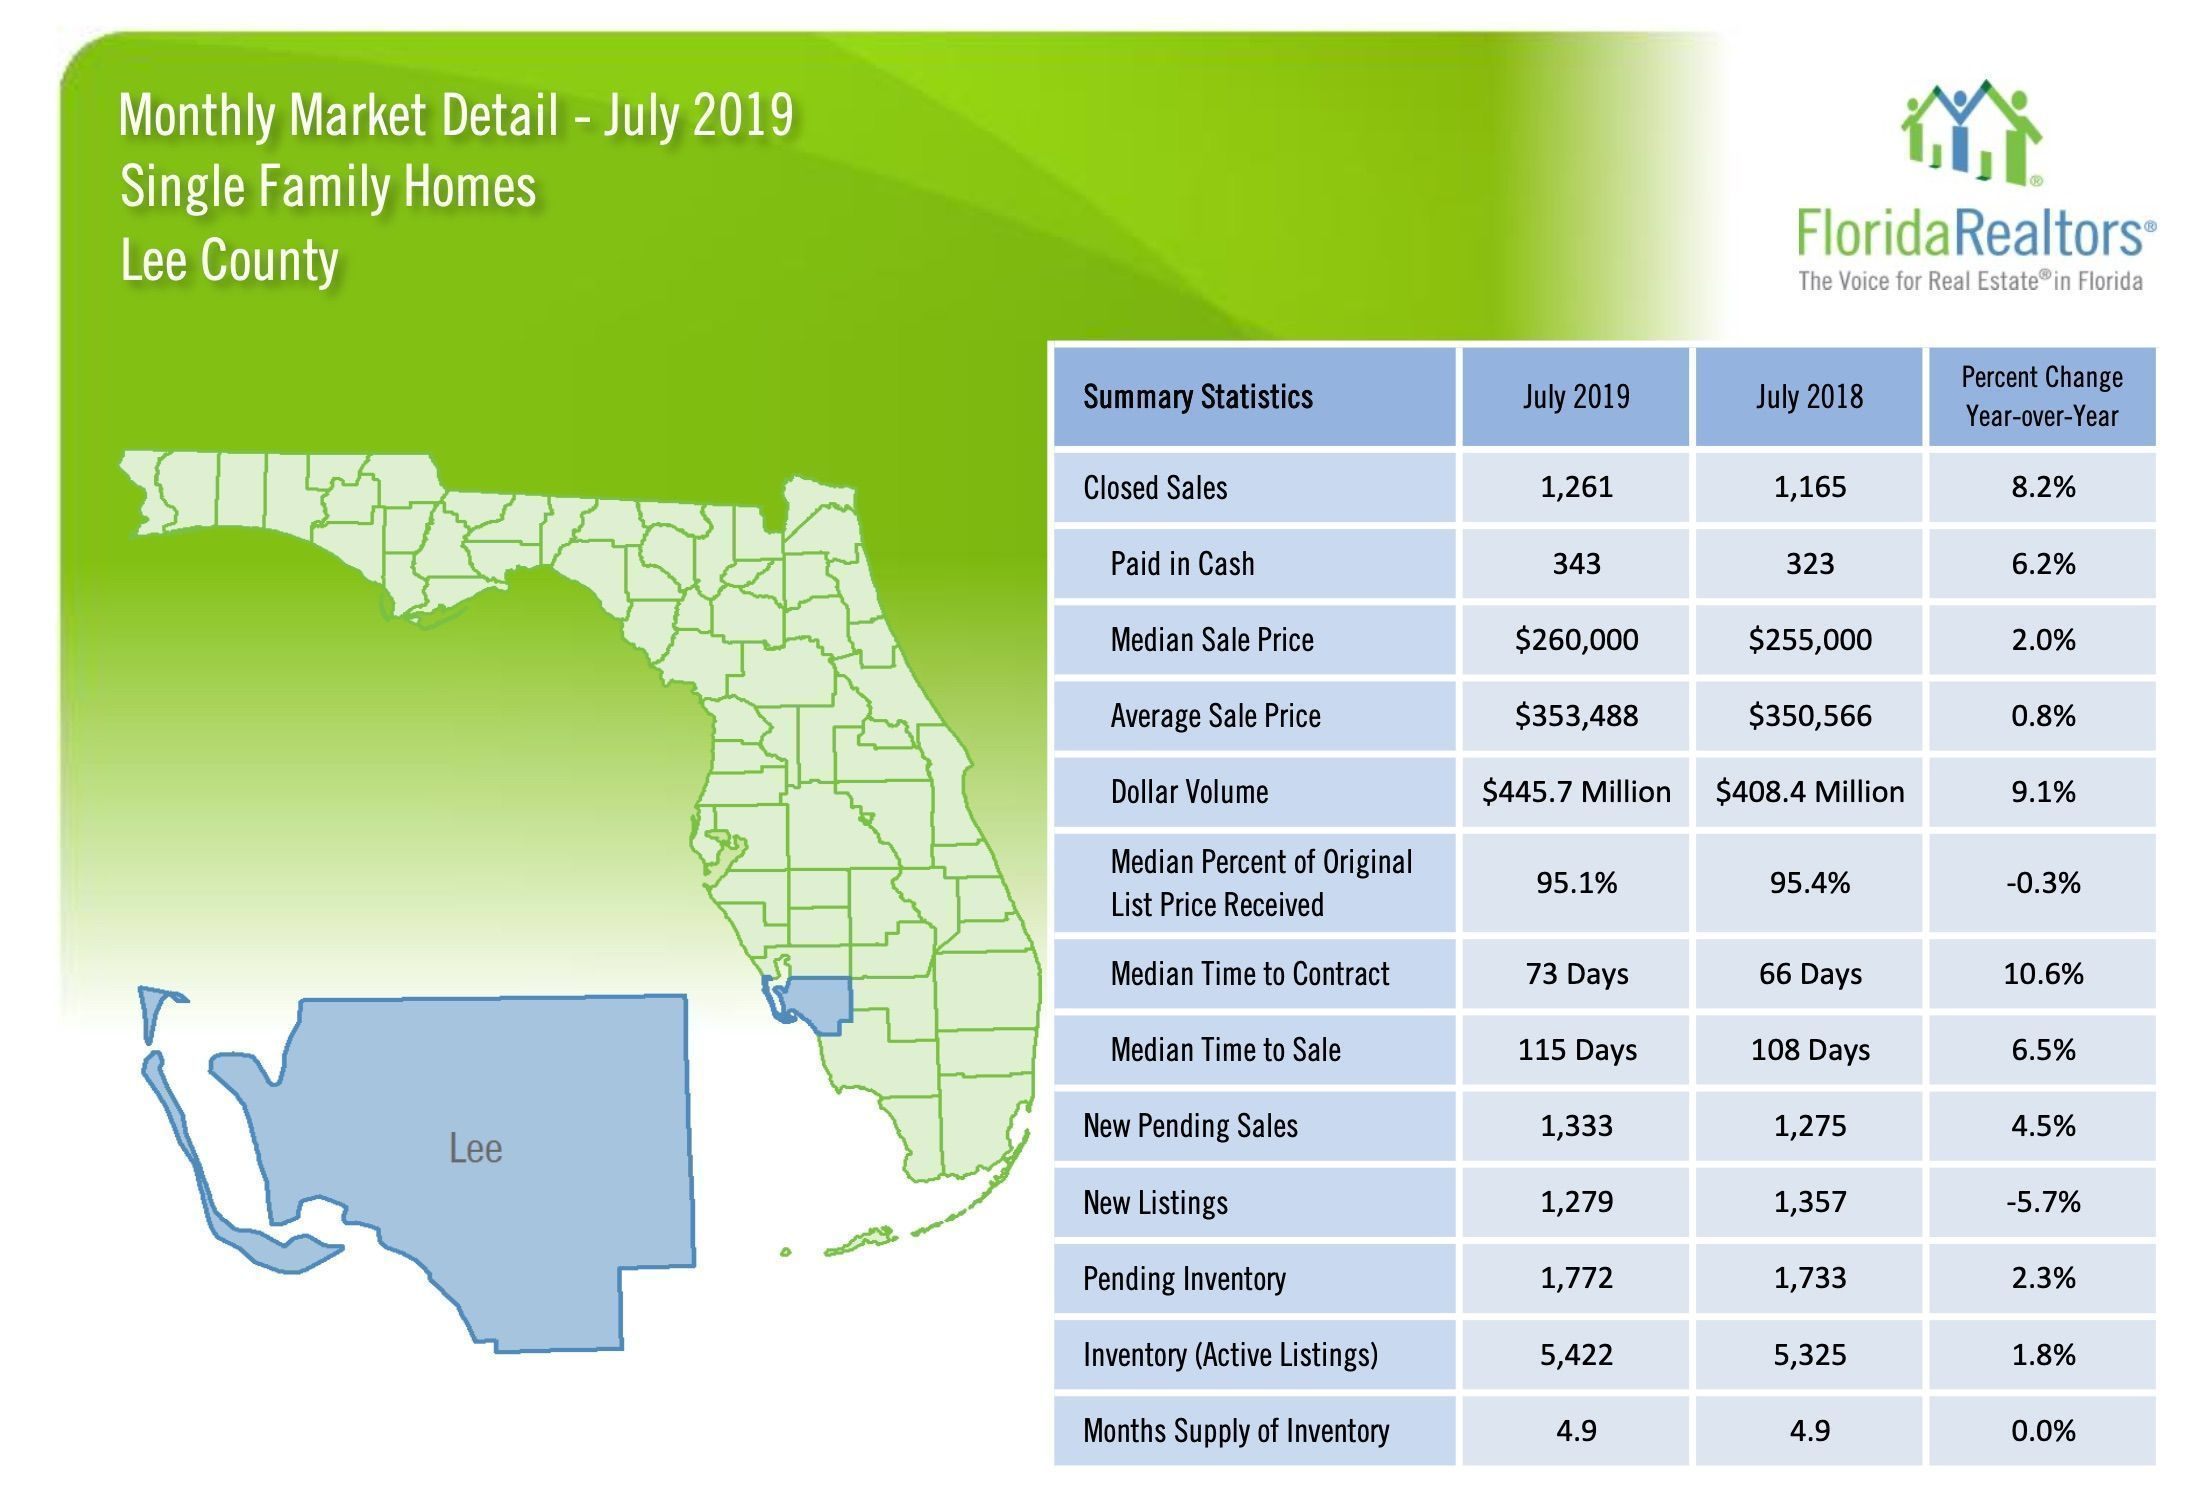 Lee County Median Sale Price increased by 2 while the